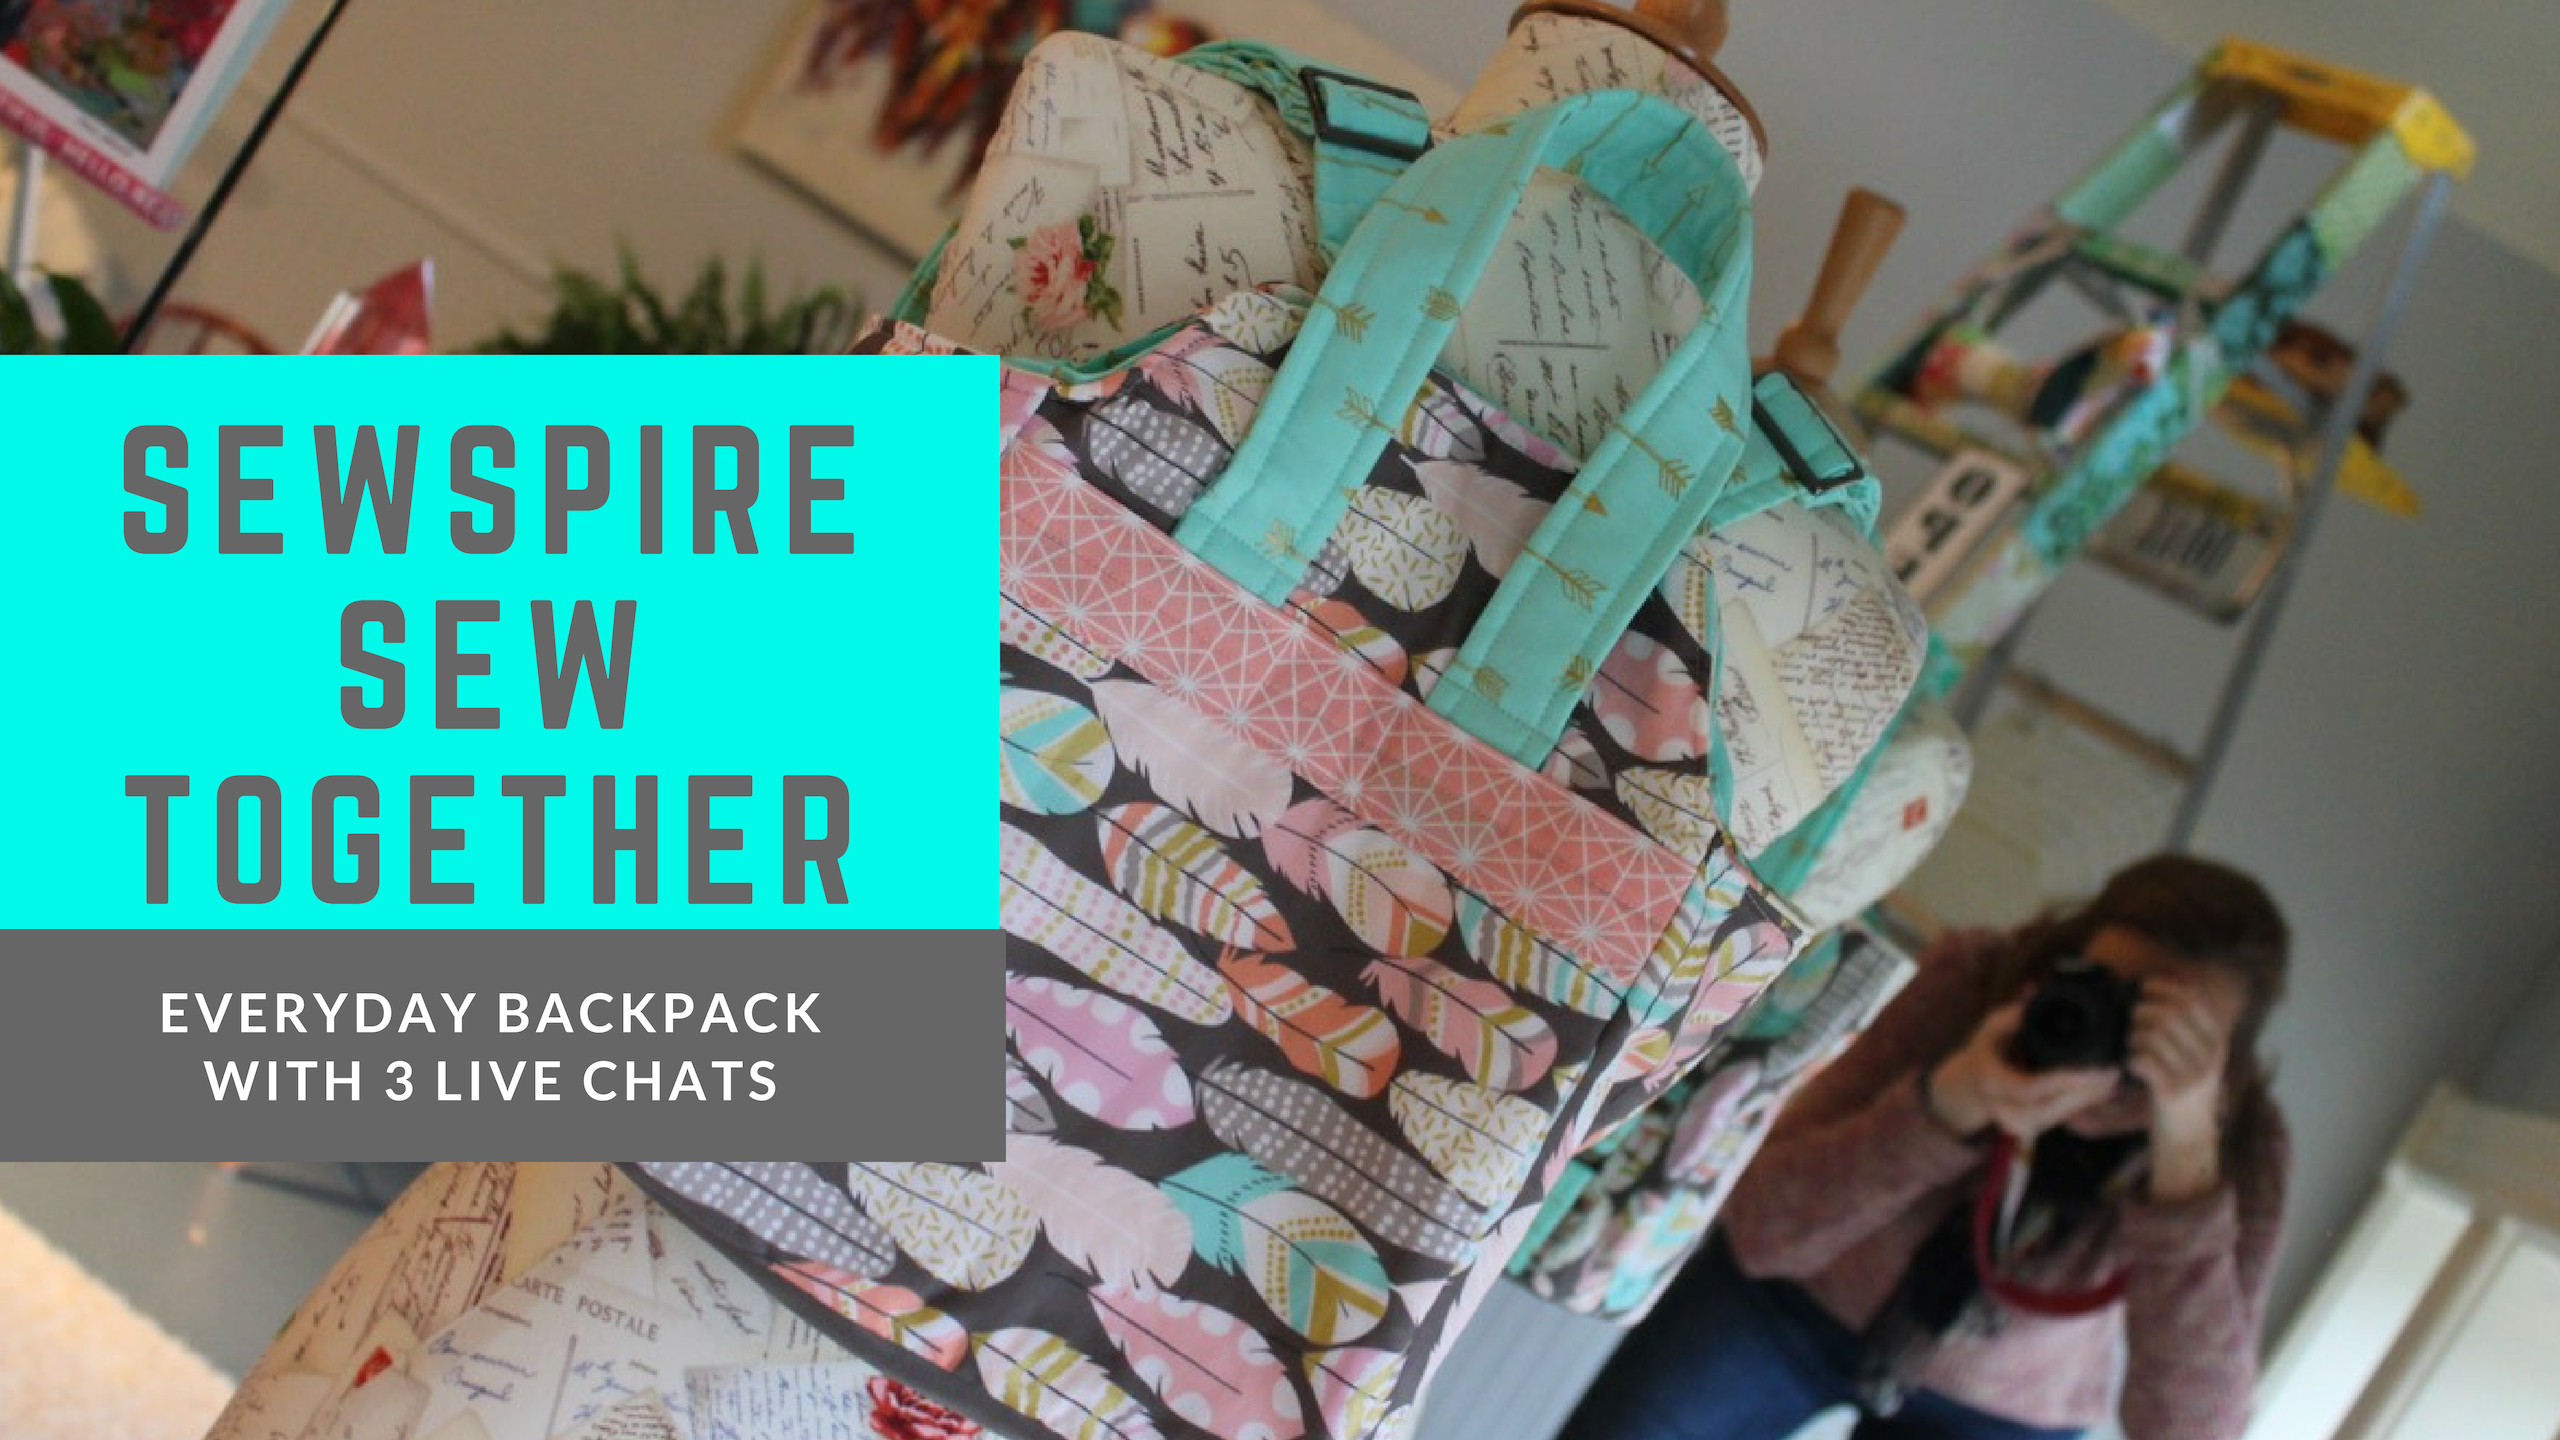 Sewspire Sew Together Everyday Backpack